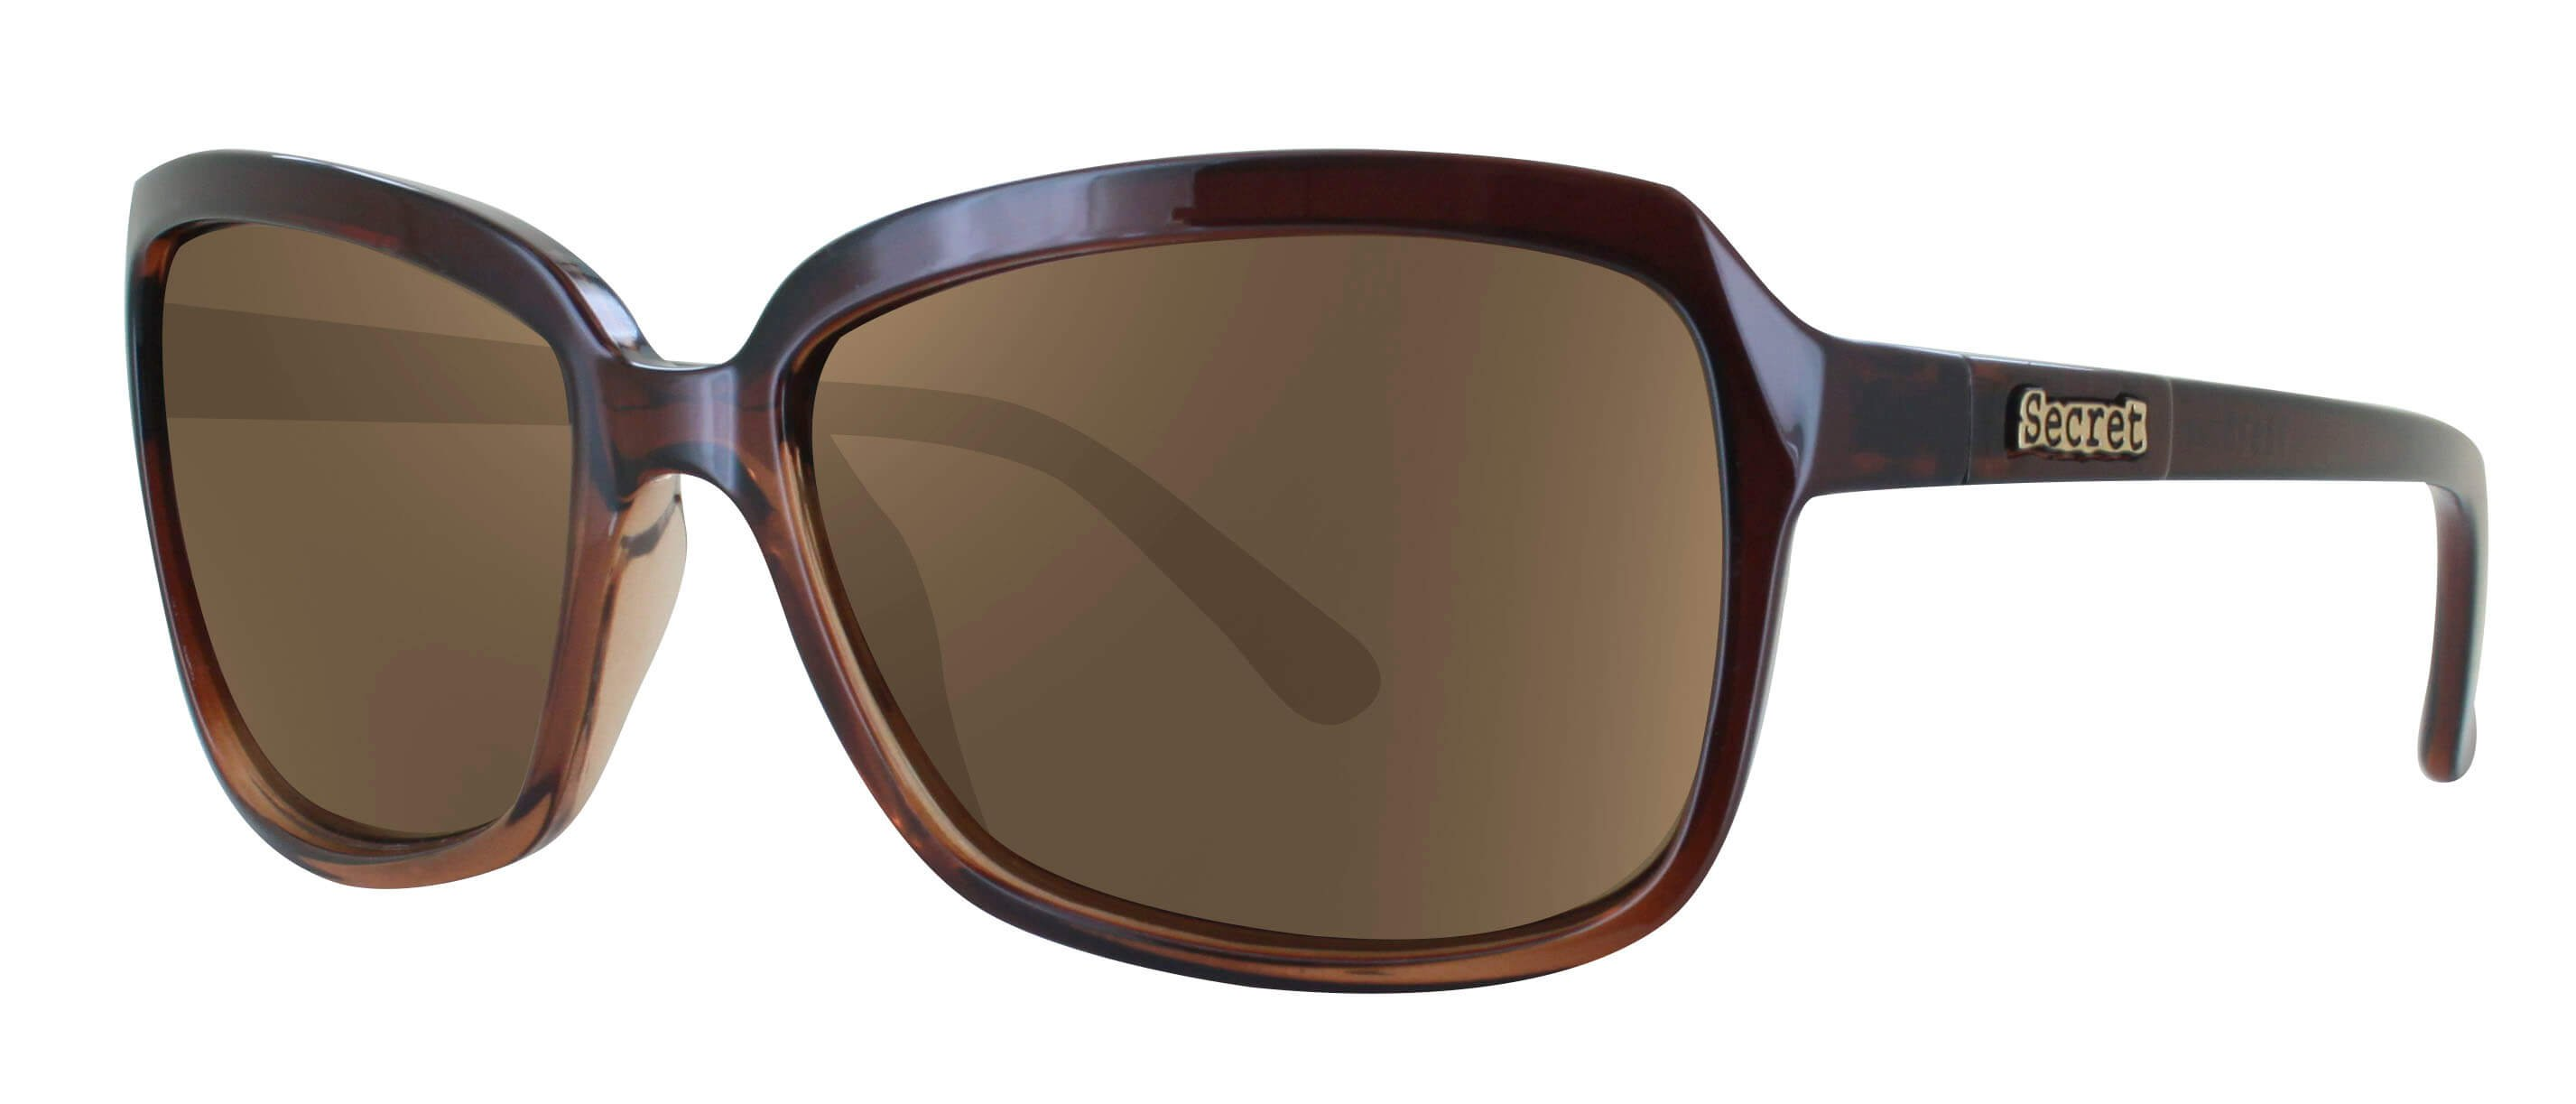 ÓC SECRET PETIT FADE NEO BROWN / POLARIZED BROWN